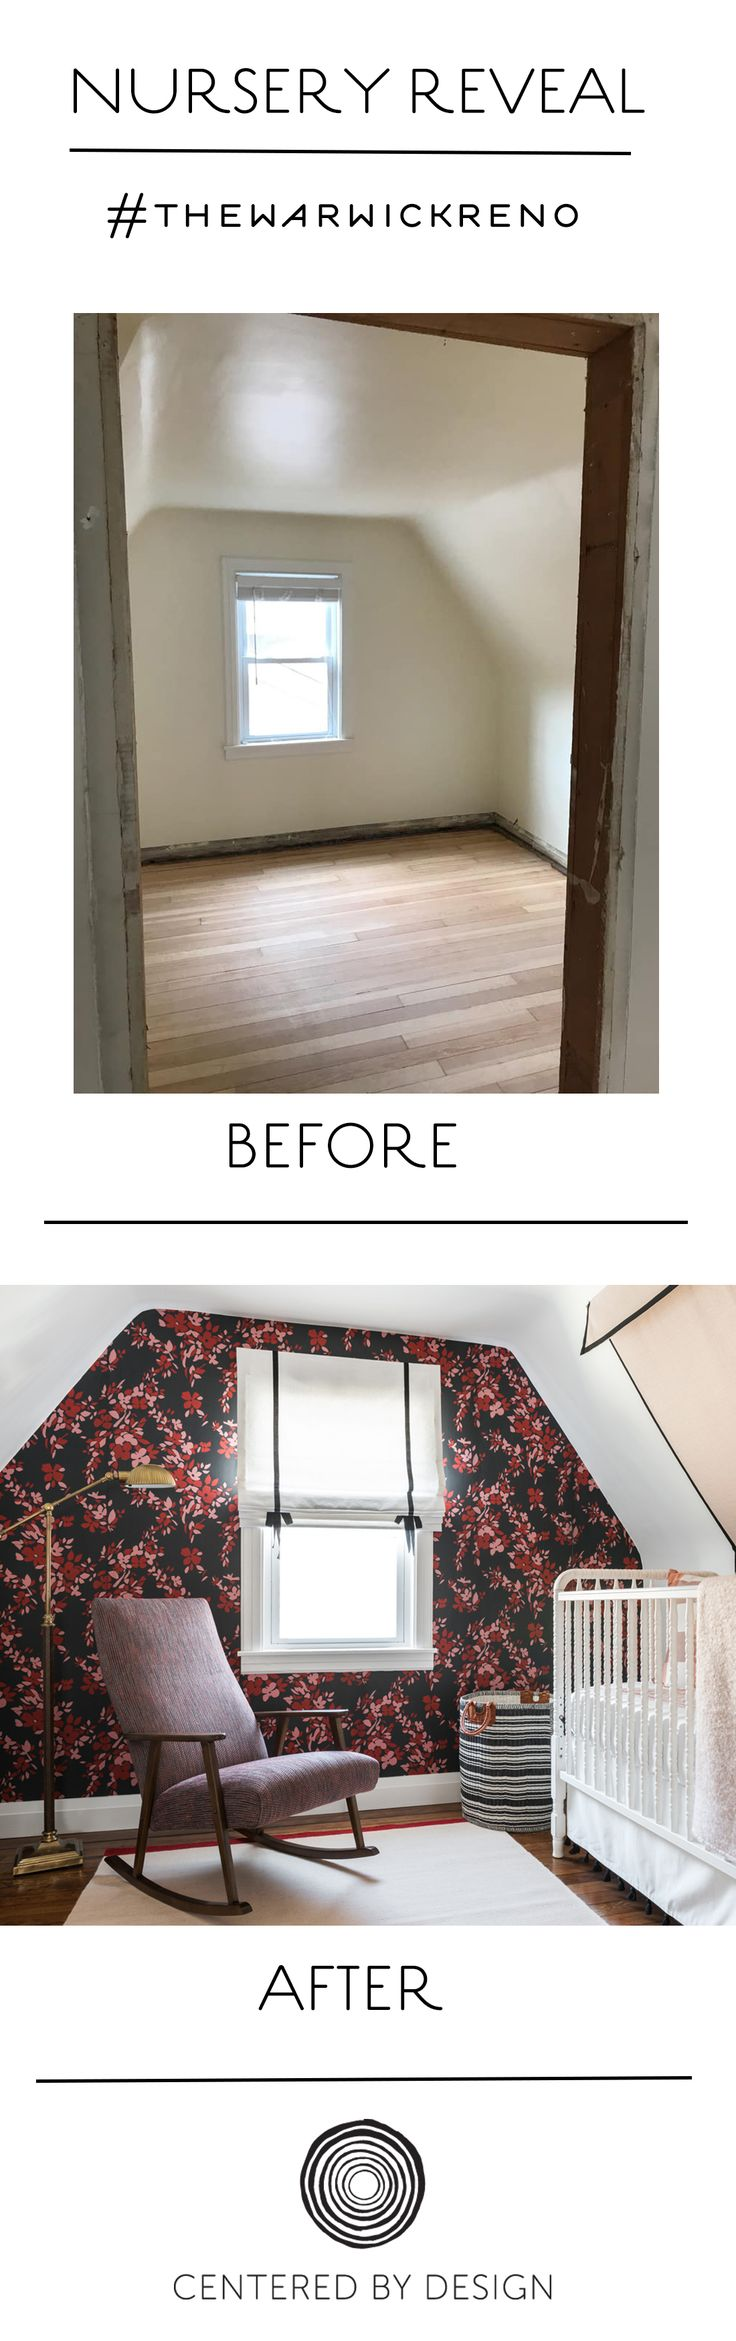 Before and After reveal of baby girl's attic nursery. Wallpaper accent wall, Jenny Lind crib, and other vintage touches - Centered by Design.